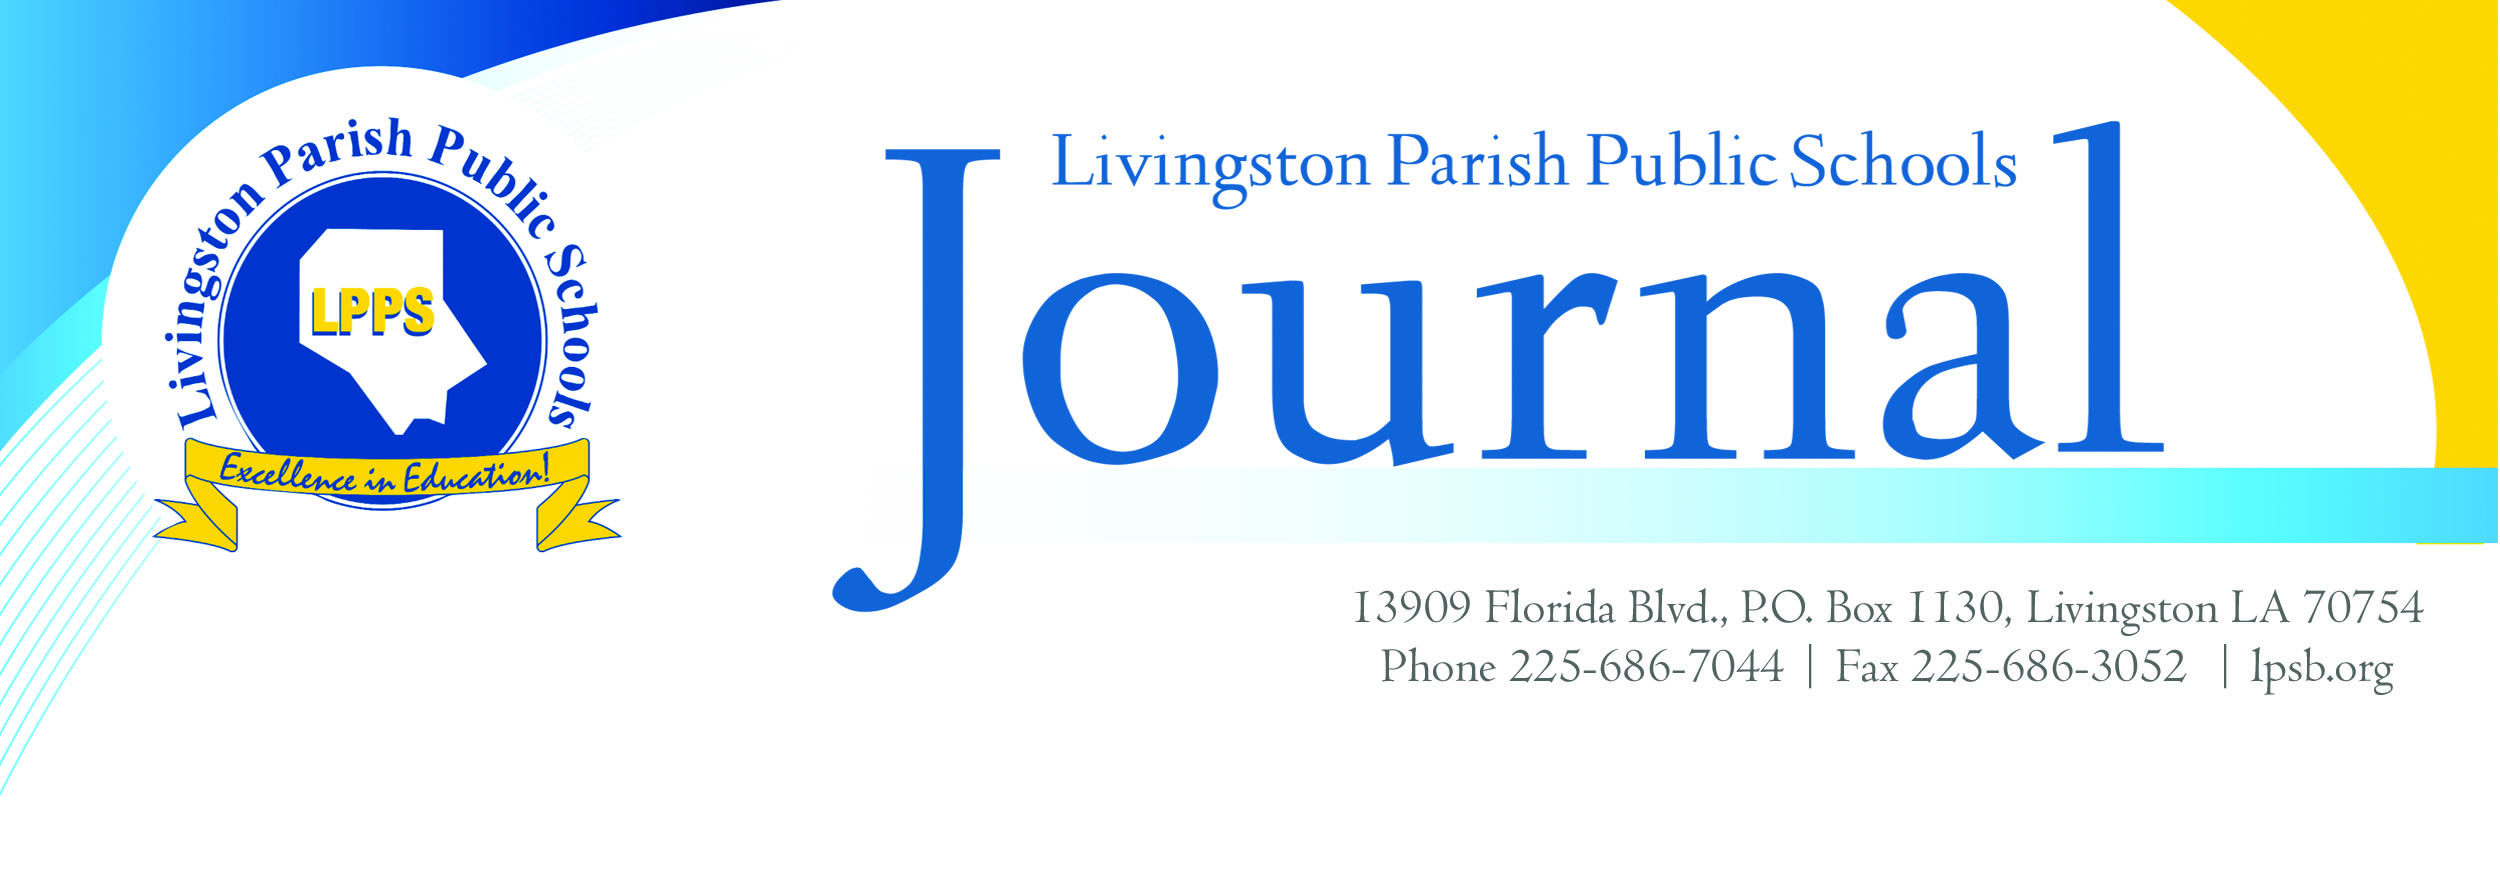 Livingston Parish Public School Journal